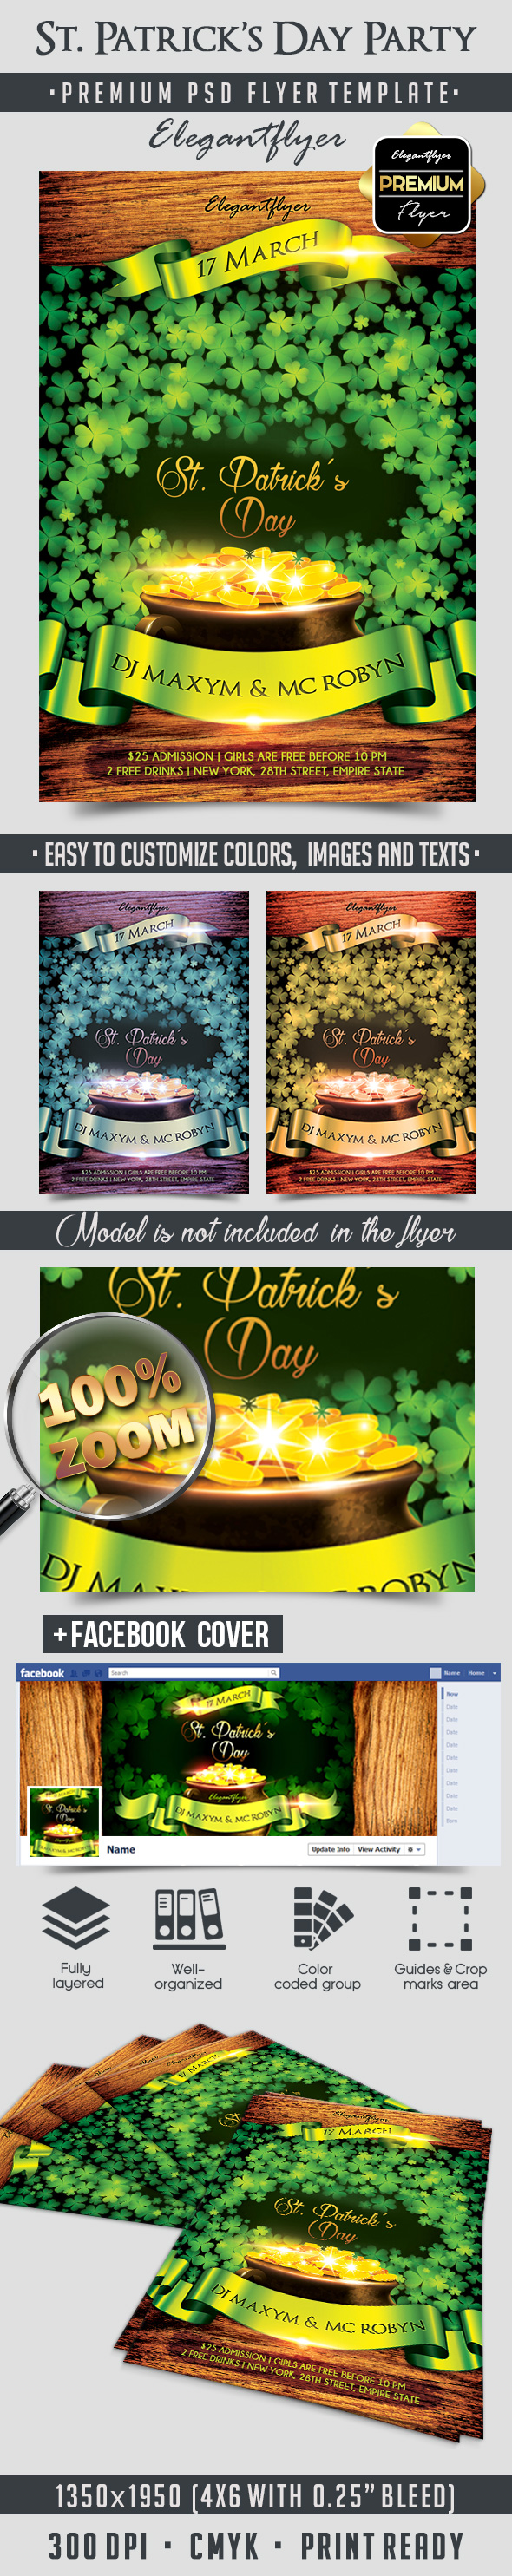 st  patrick u2019s day party  u2013 flyer psd template  u2013 by elegantflyer